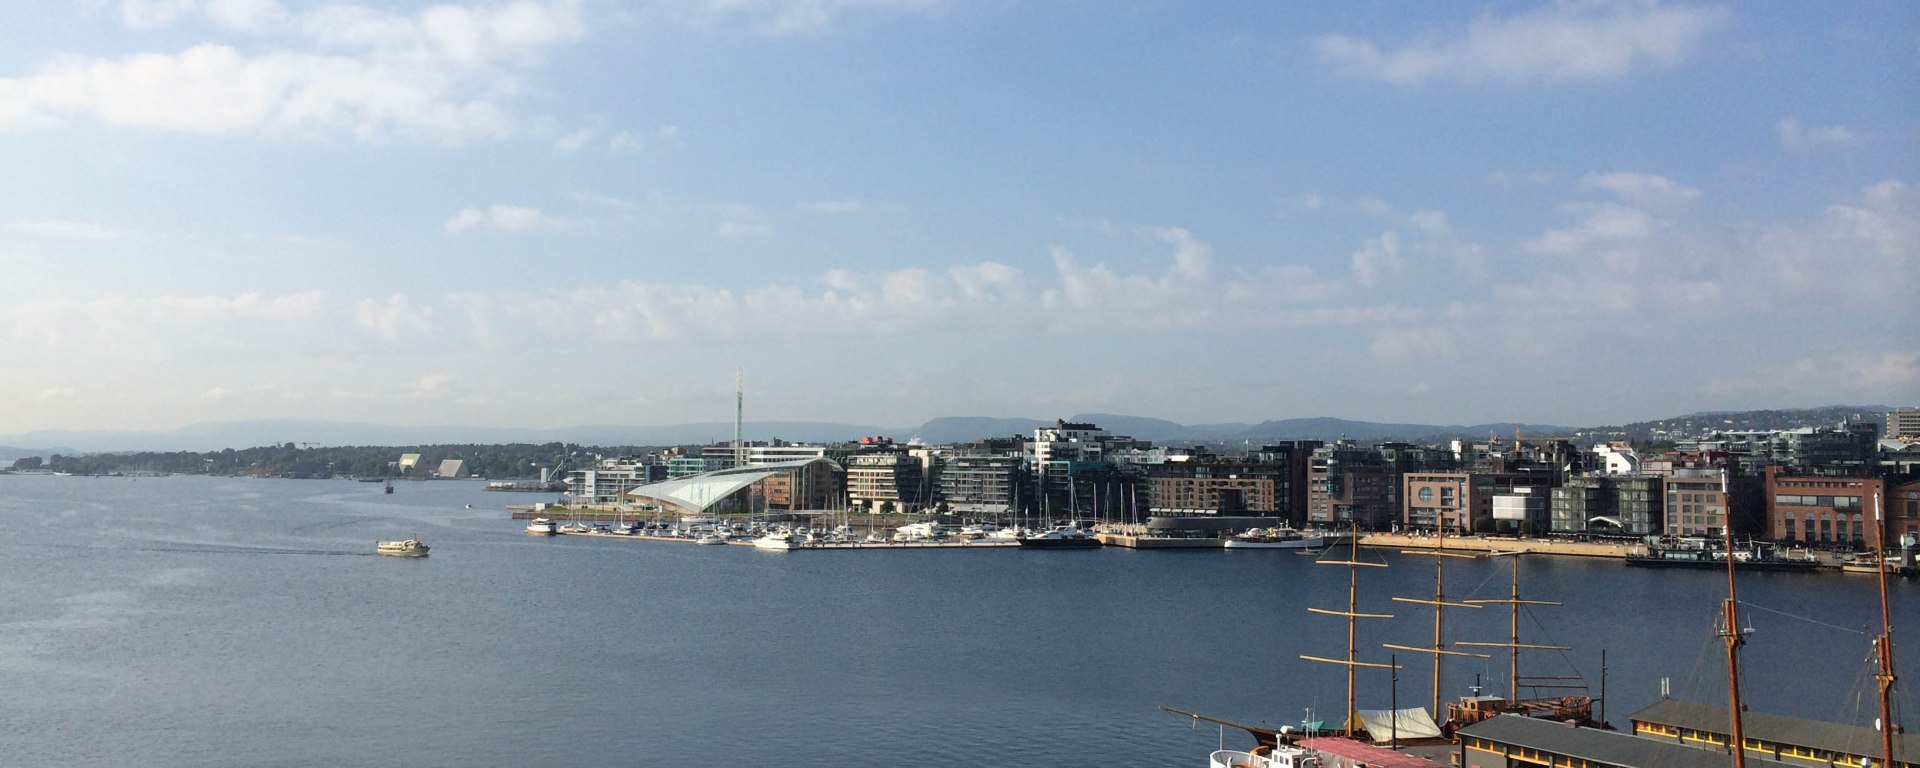 Oslo, Norway, Scandinavia